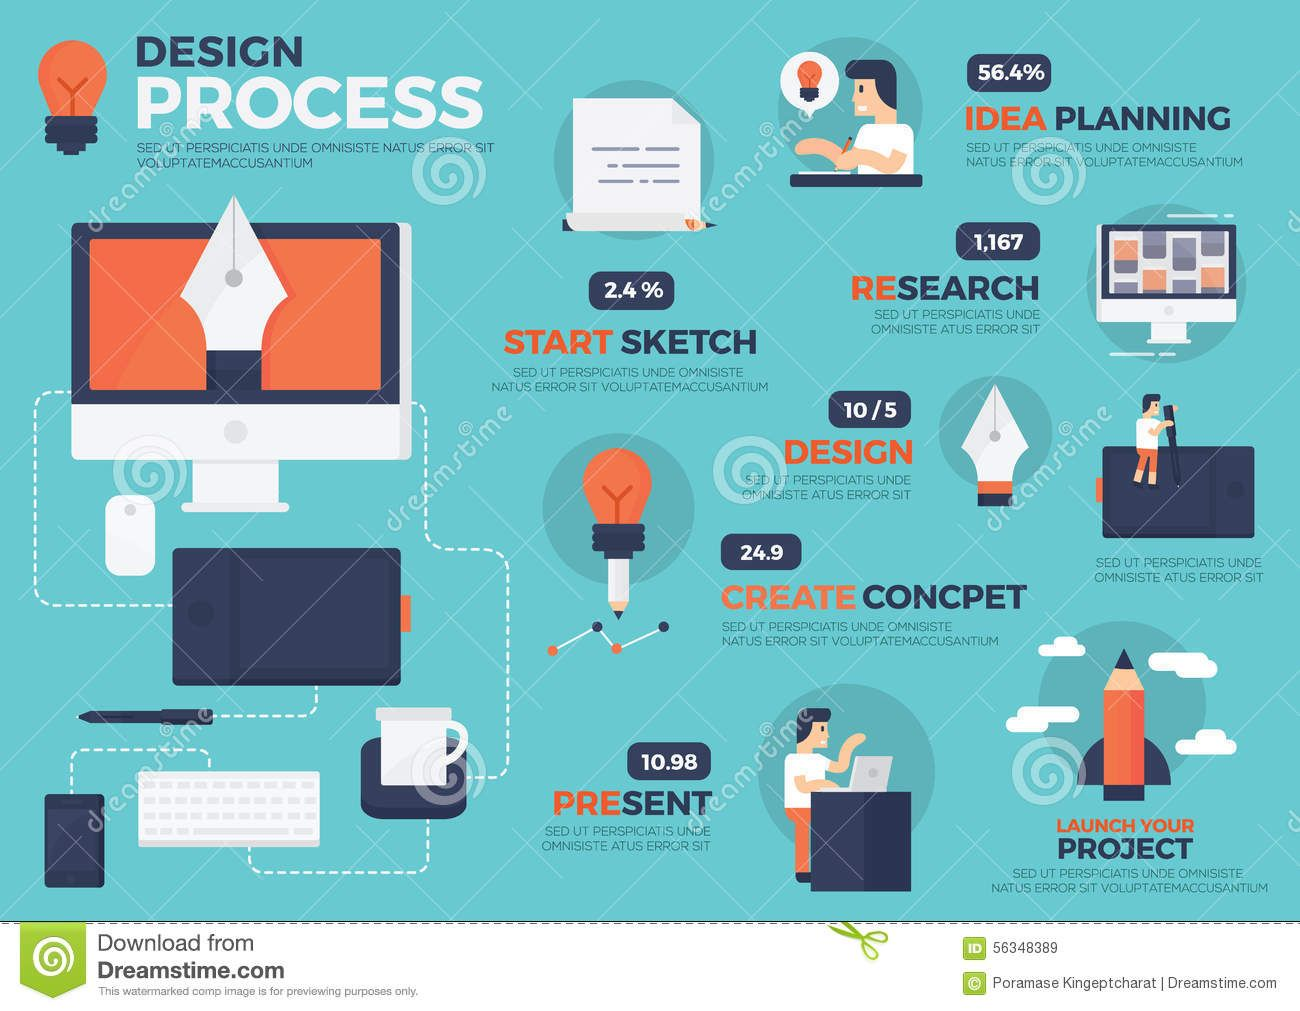 Elements Of Communication Diagram Paper Making Process Graphic Design Infographic Visual